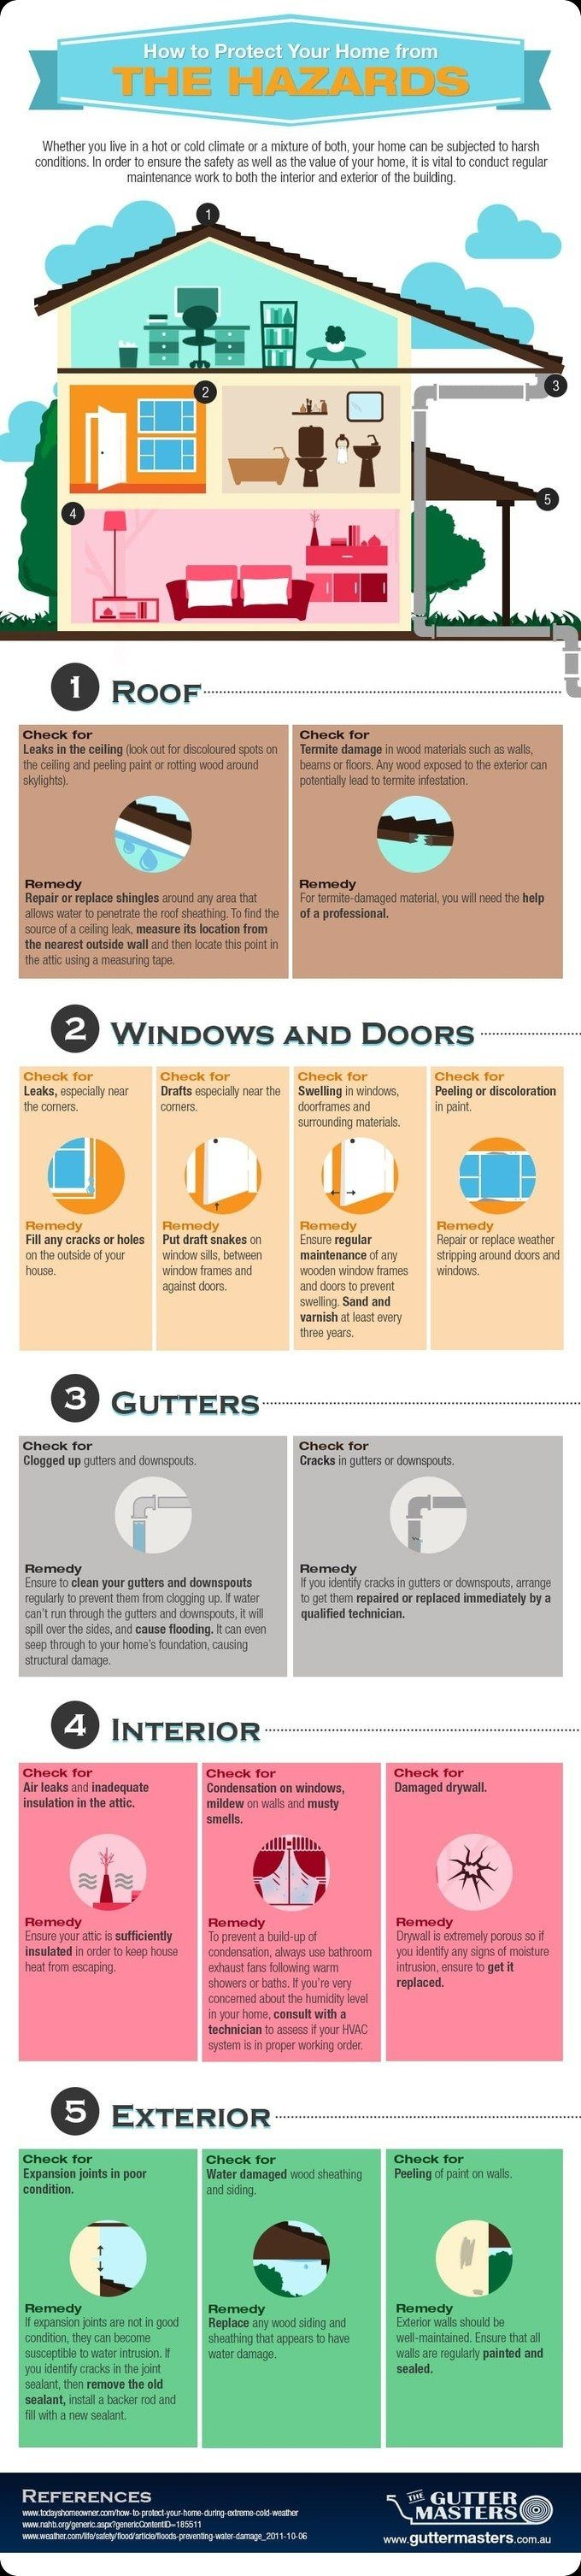 Protecting your home from some common hazards (Infographic)